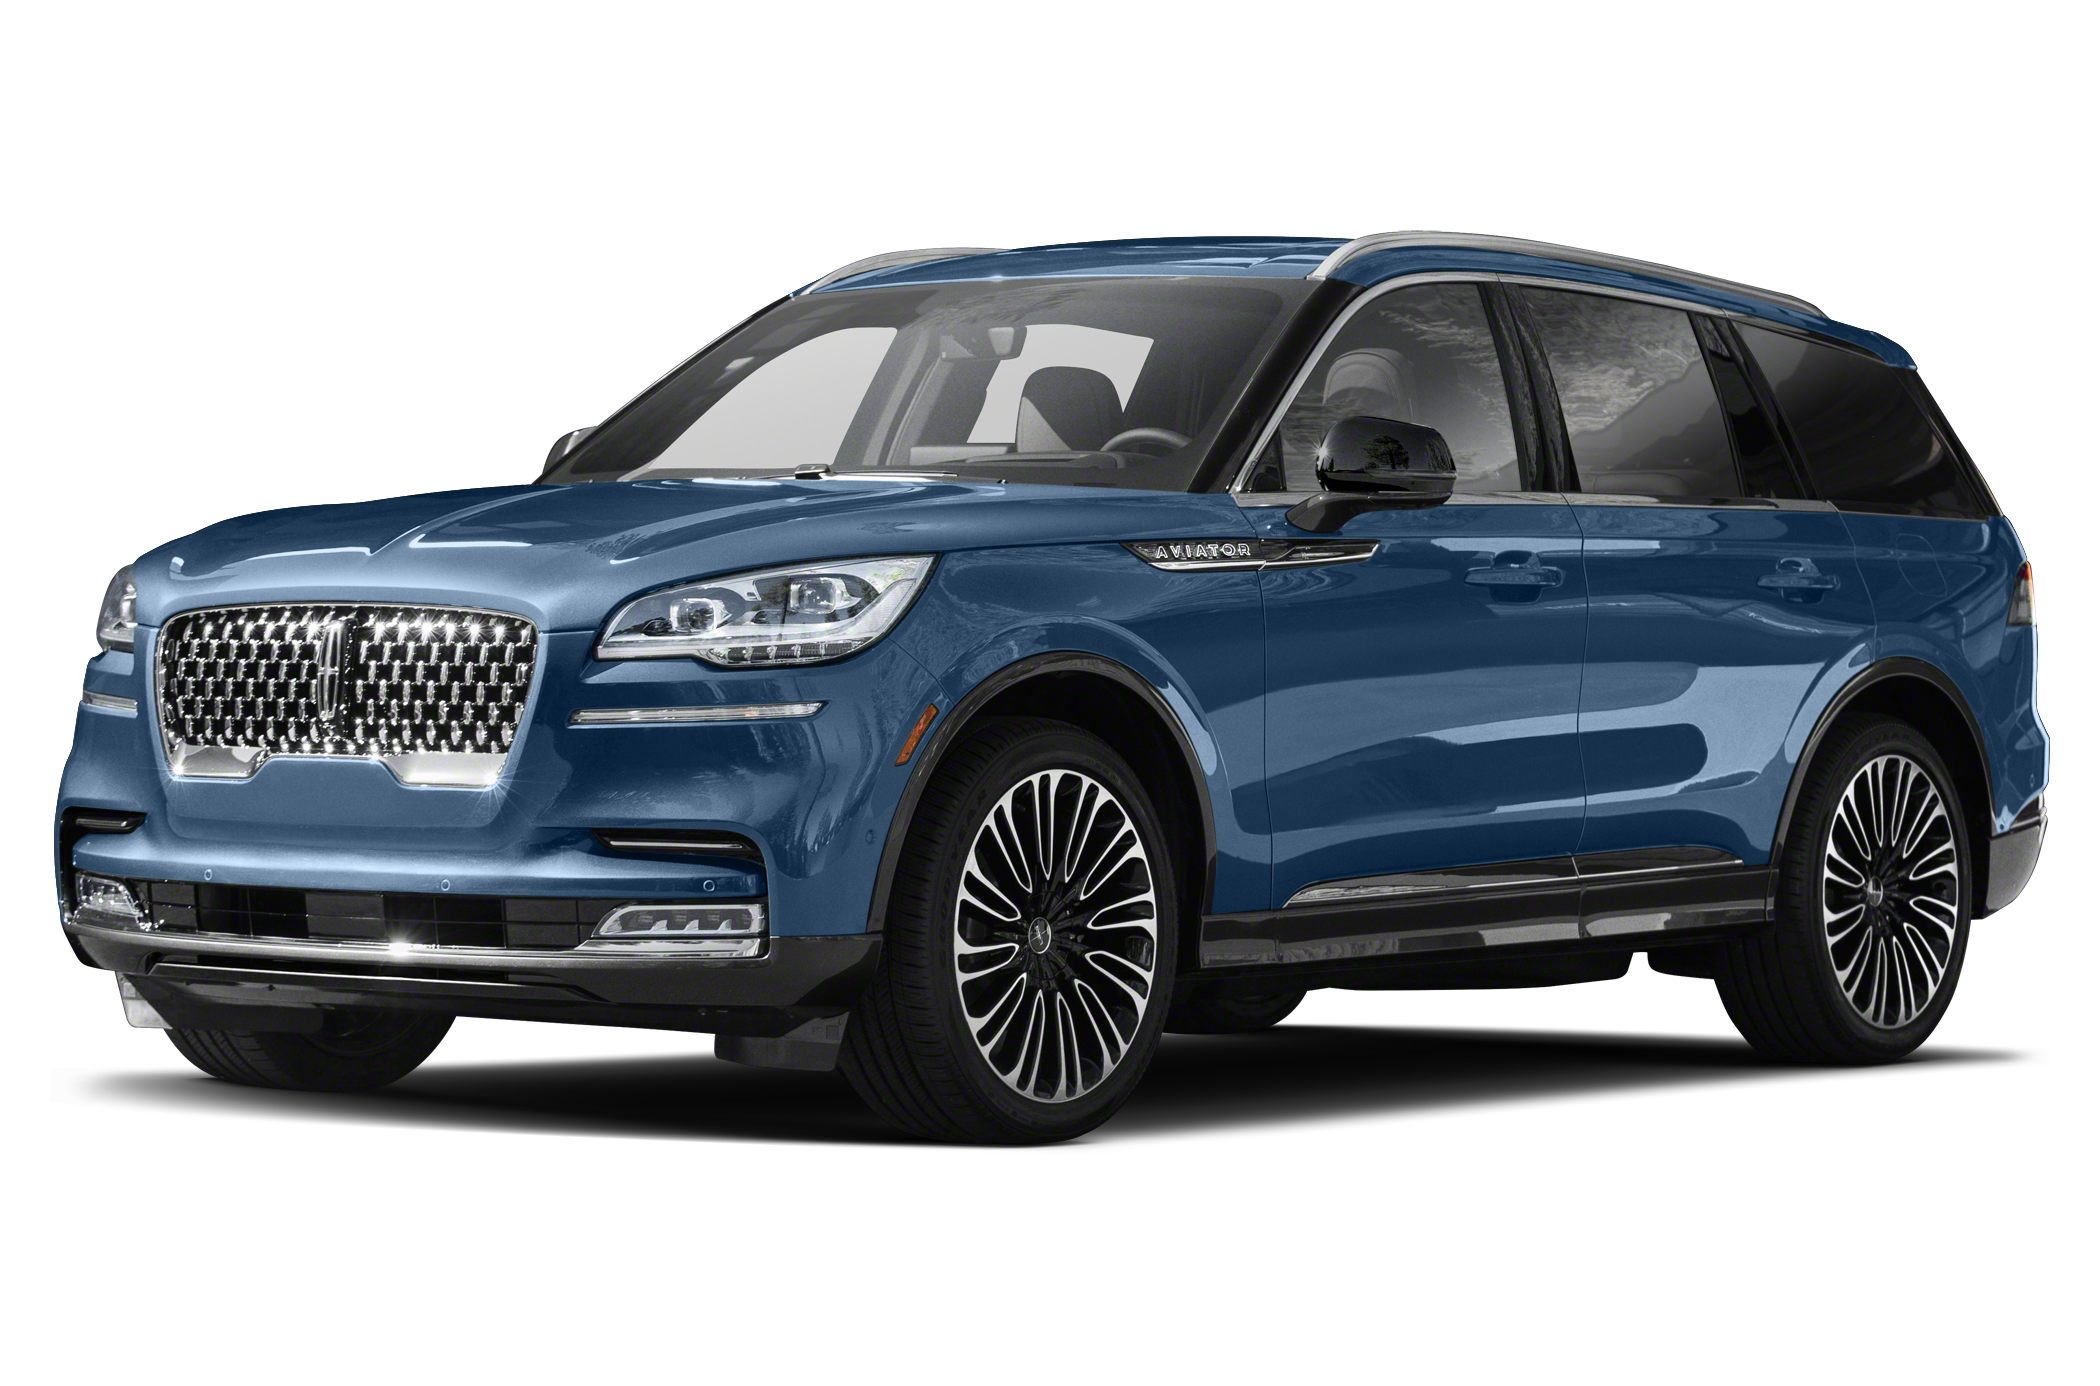 2020 Lincoln Aviator Deals Prices Incentives Leases Overview